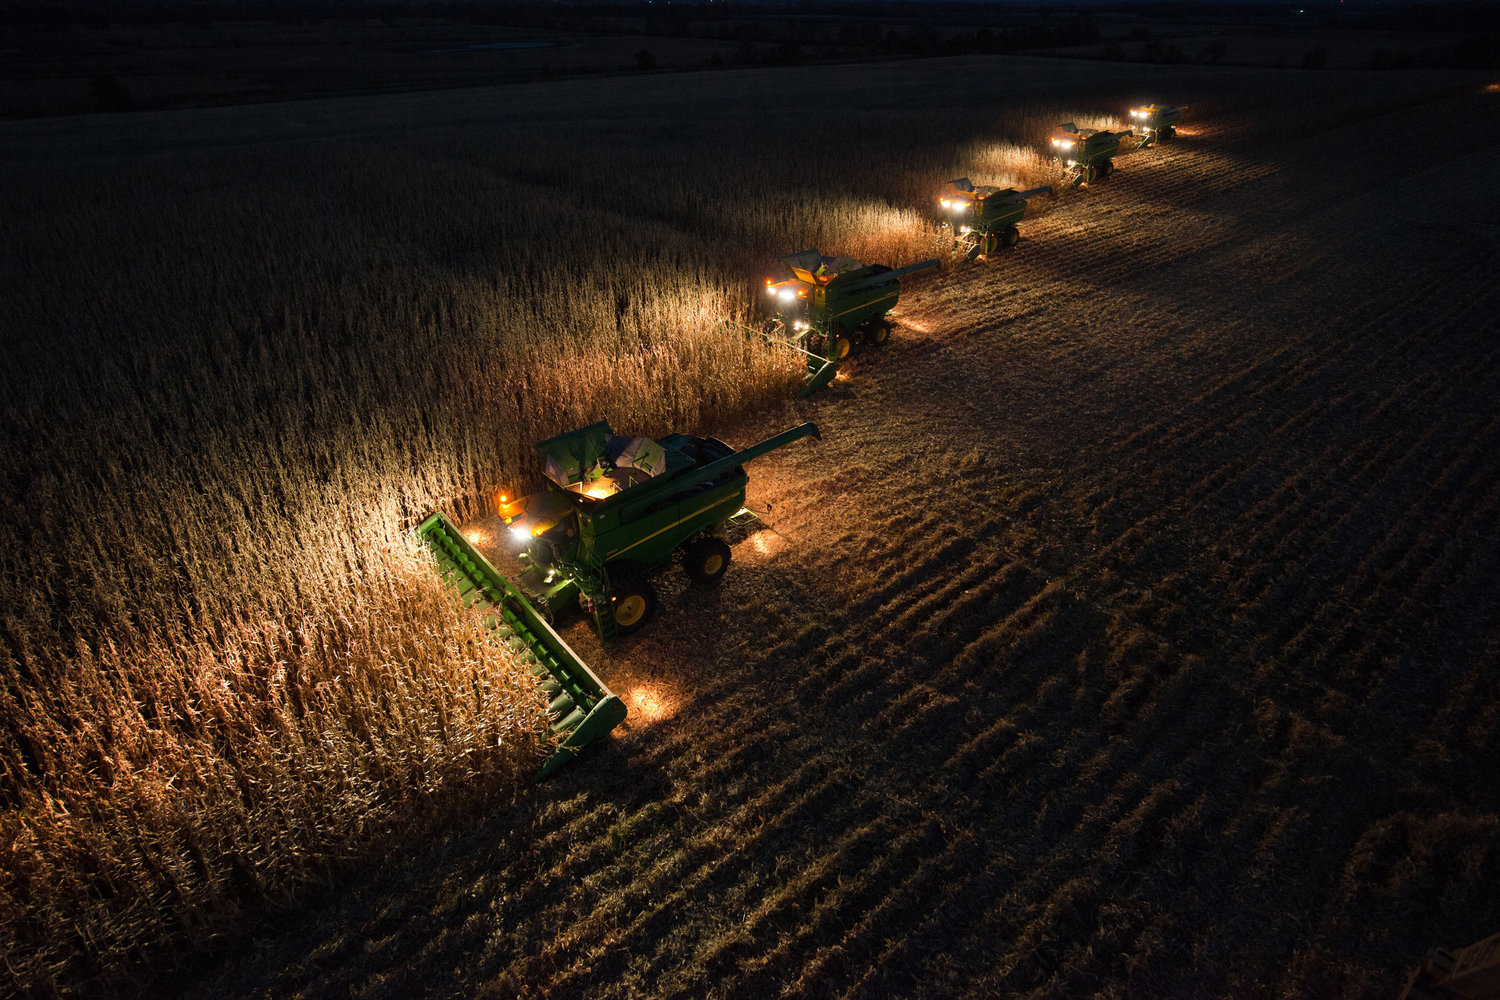 John Deere S Series Combines at Night